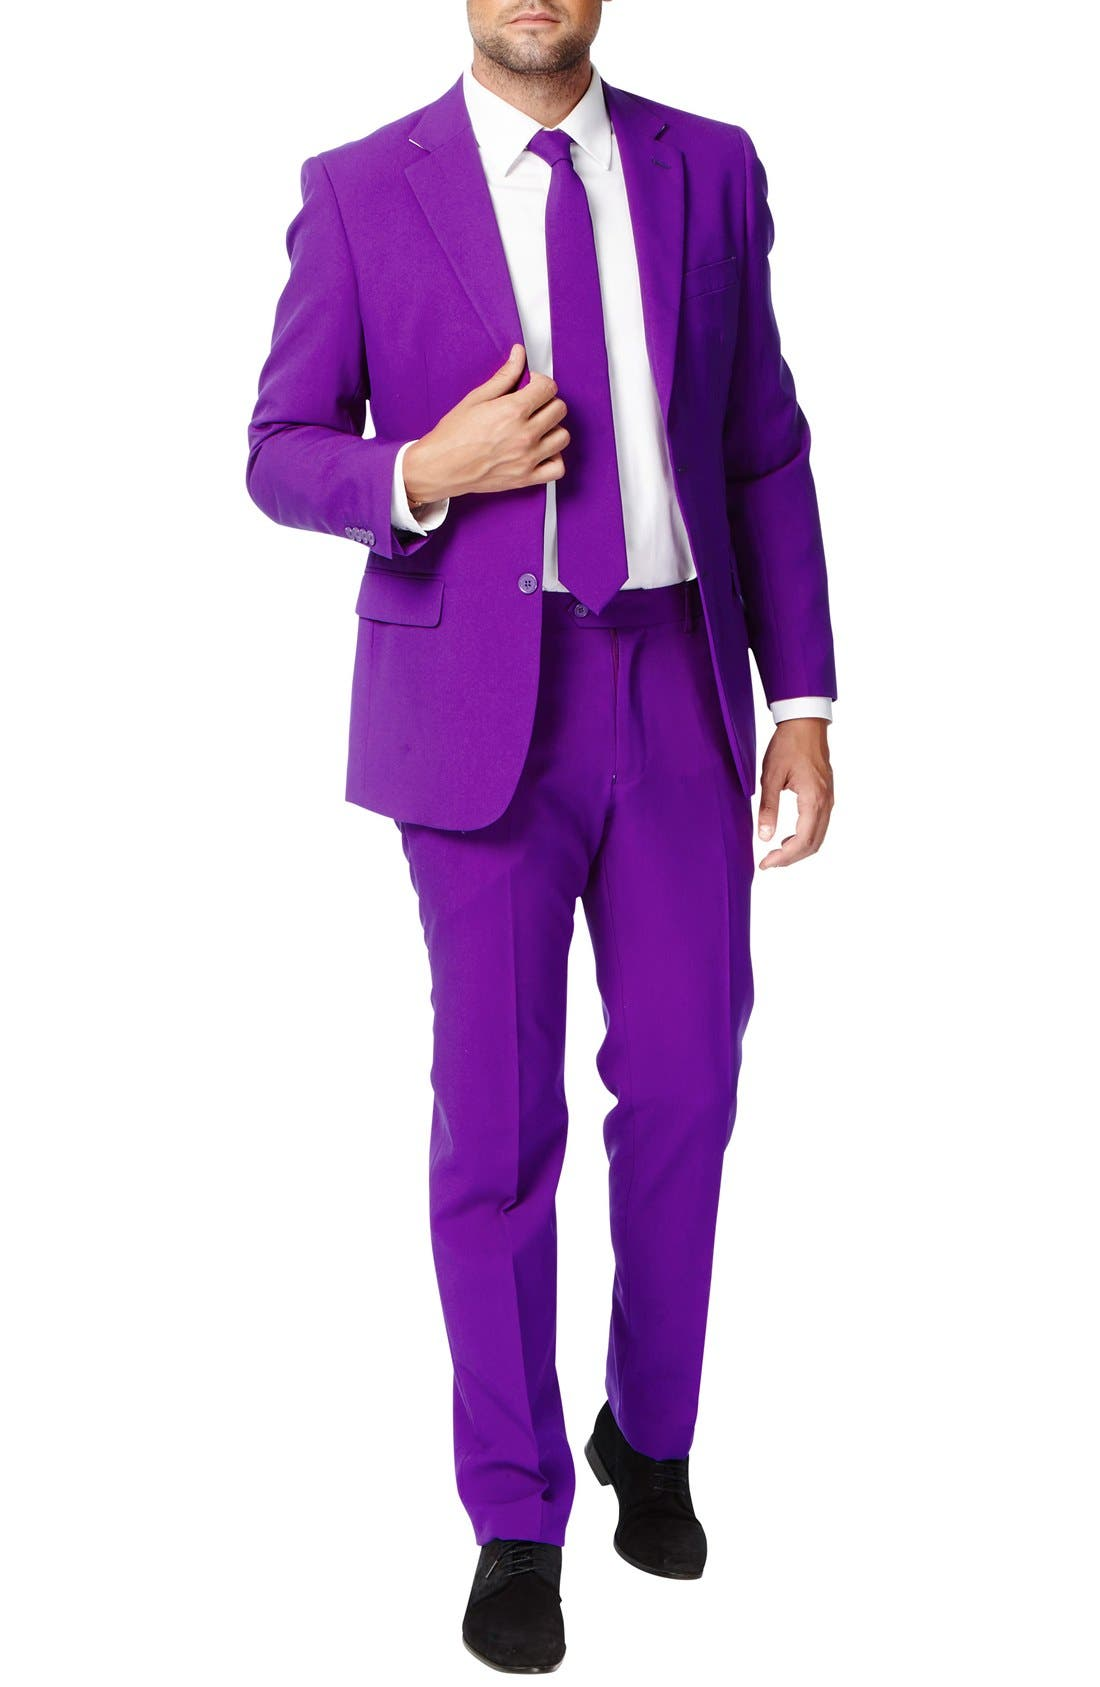 OppoSuits 'Purple Prince' Trim Fit Two-Piece Suit with Tie